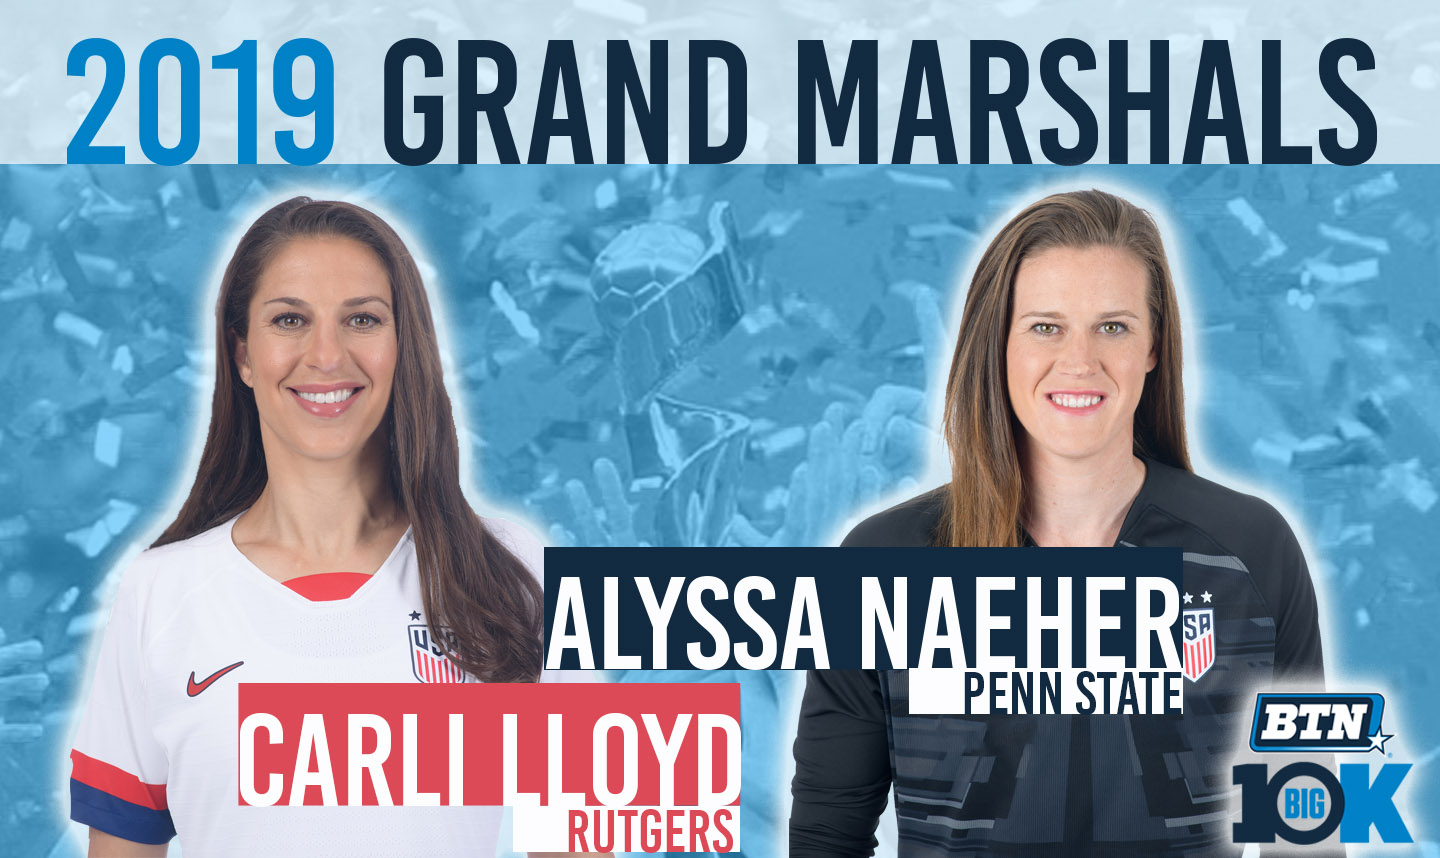 Carli Lloyd and Alyssa Naeher Named as 2019 BTN Big 10K Grand Marshals